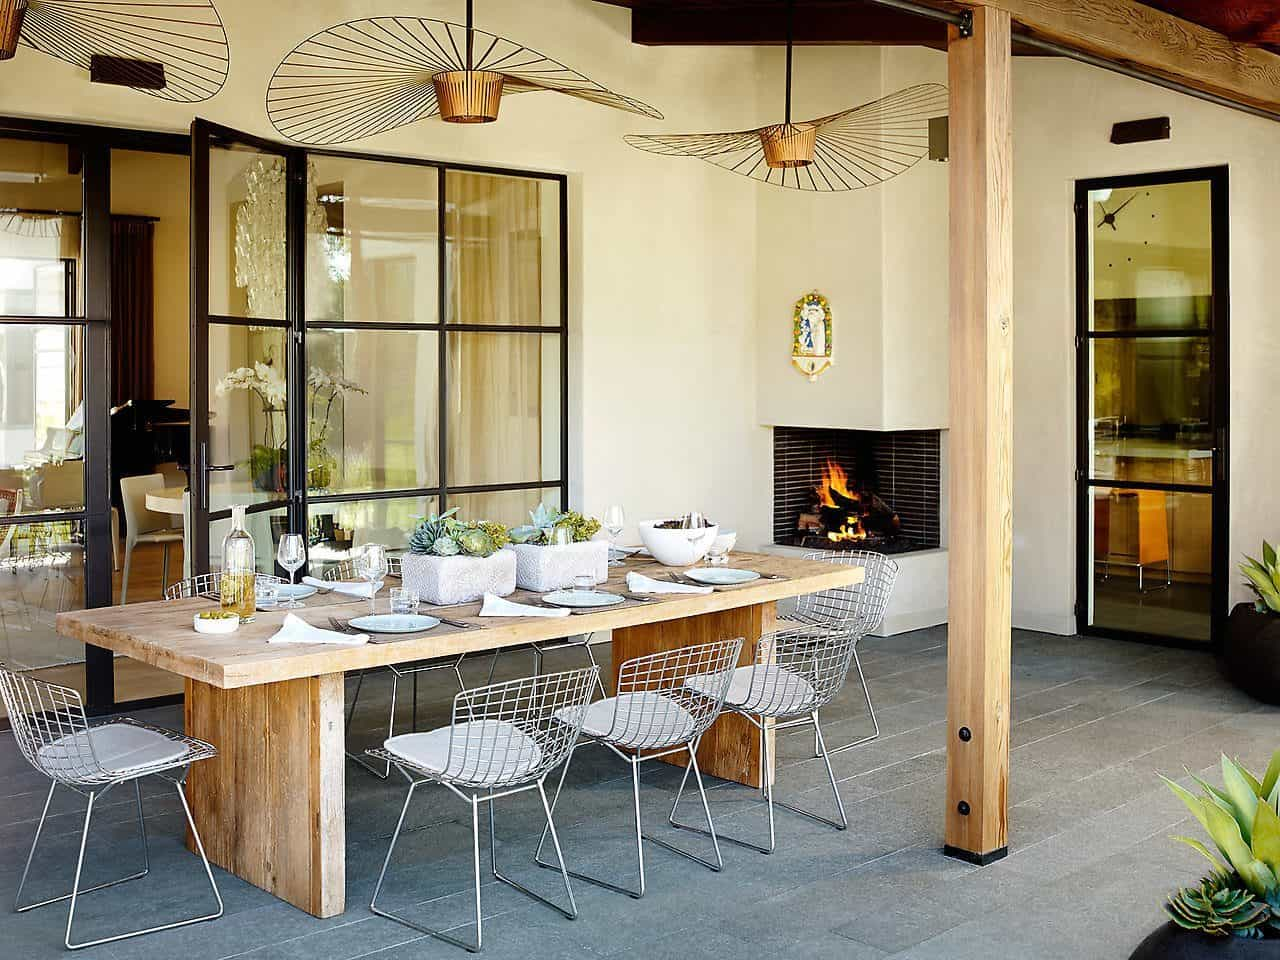 Courtyard House-Butler Armsden-07-1 Kindesign